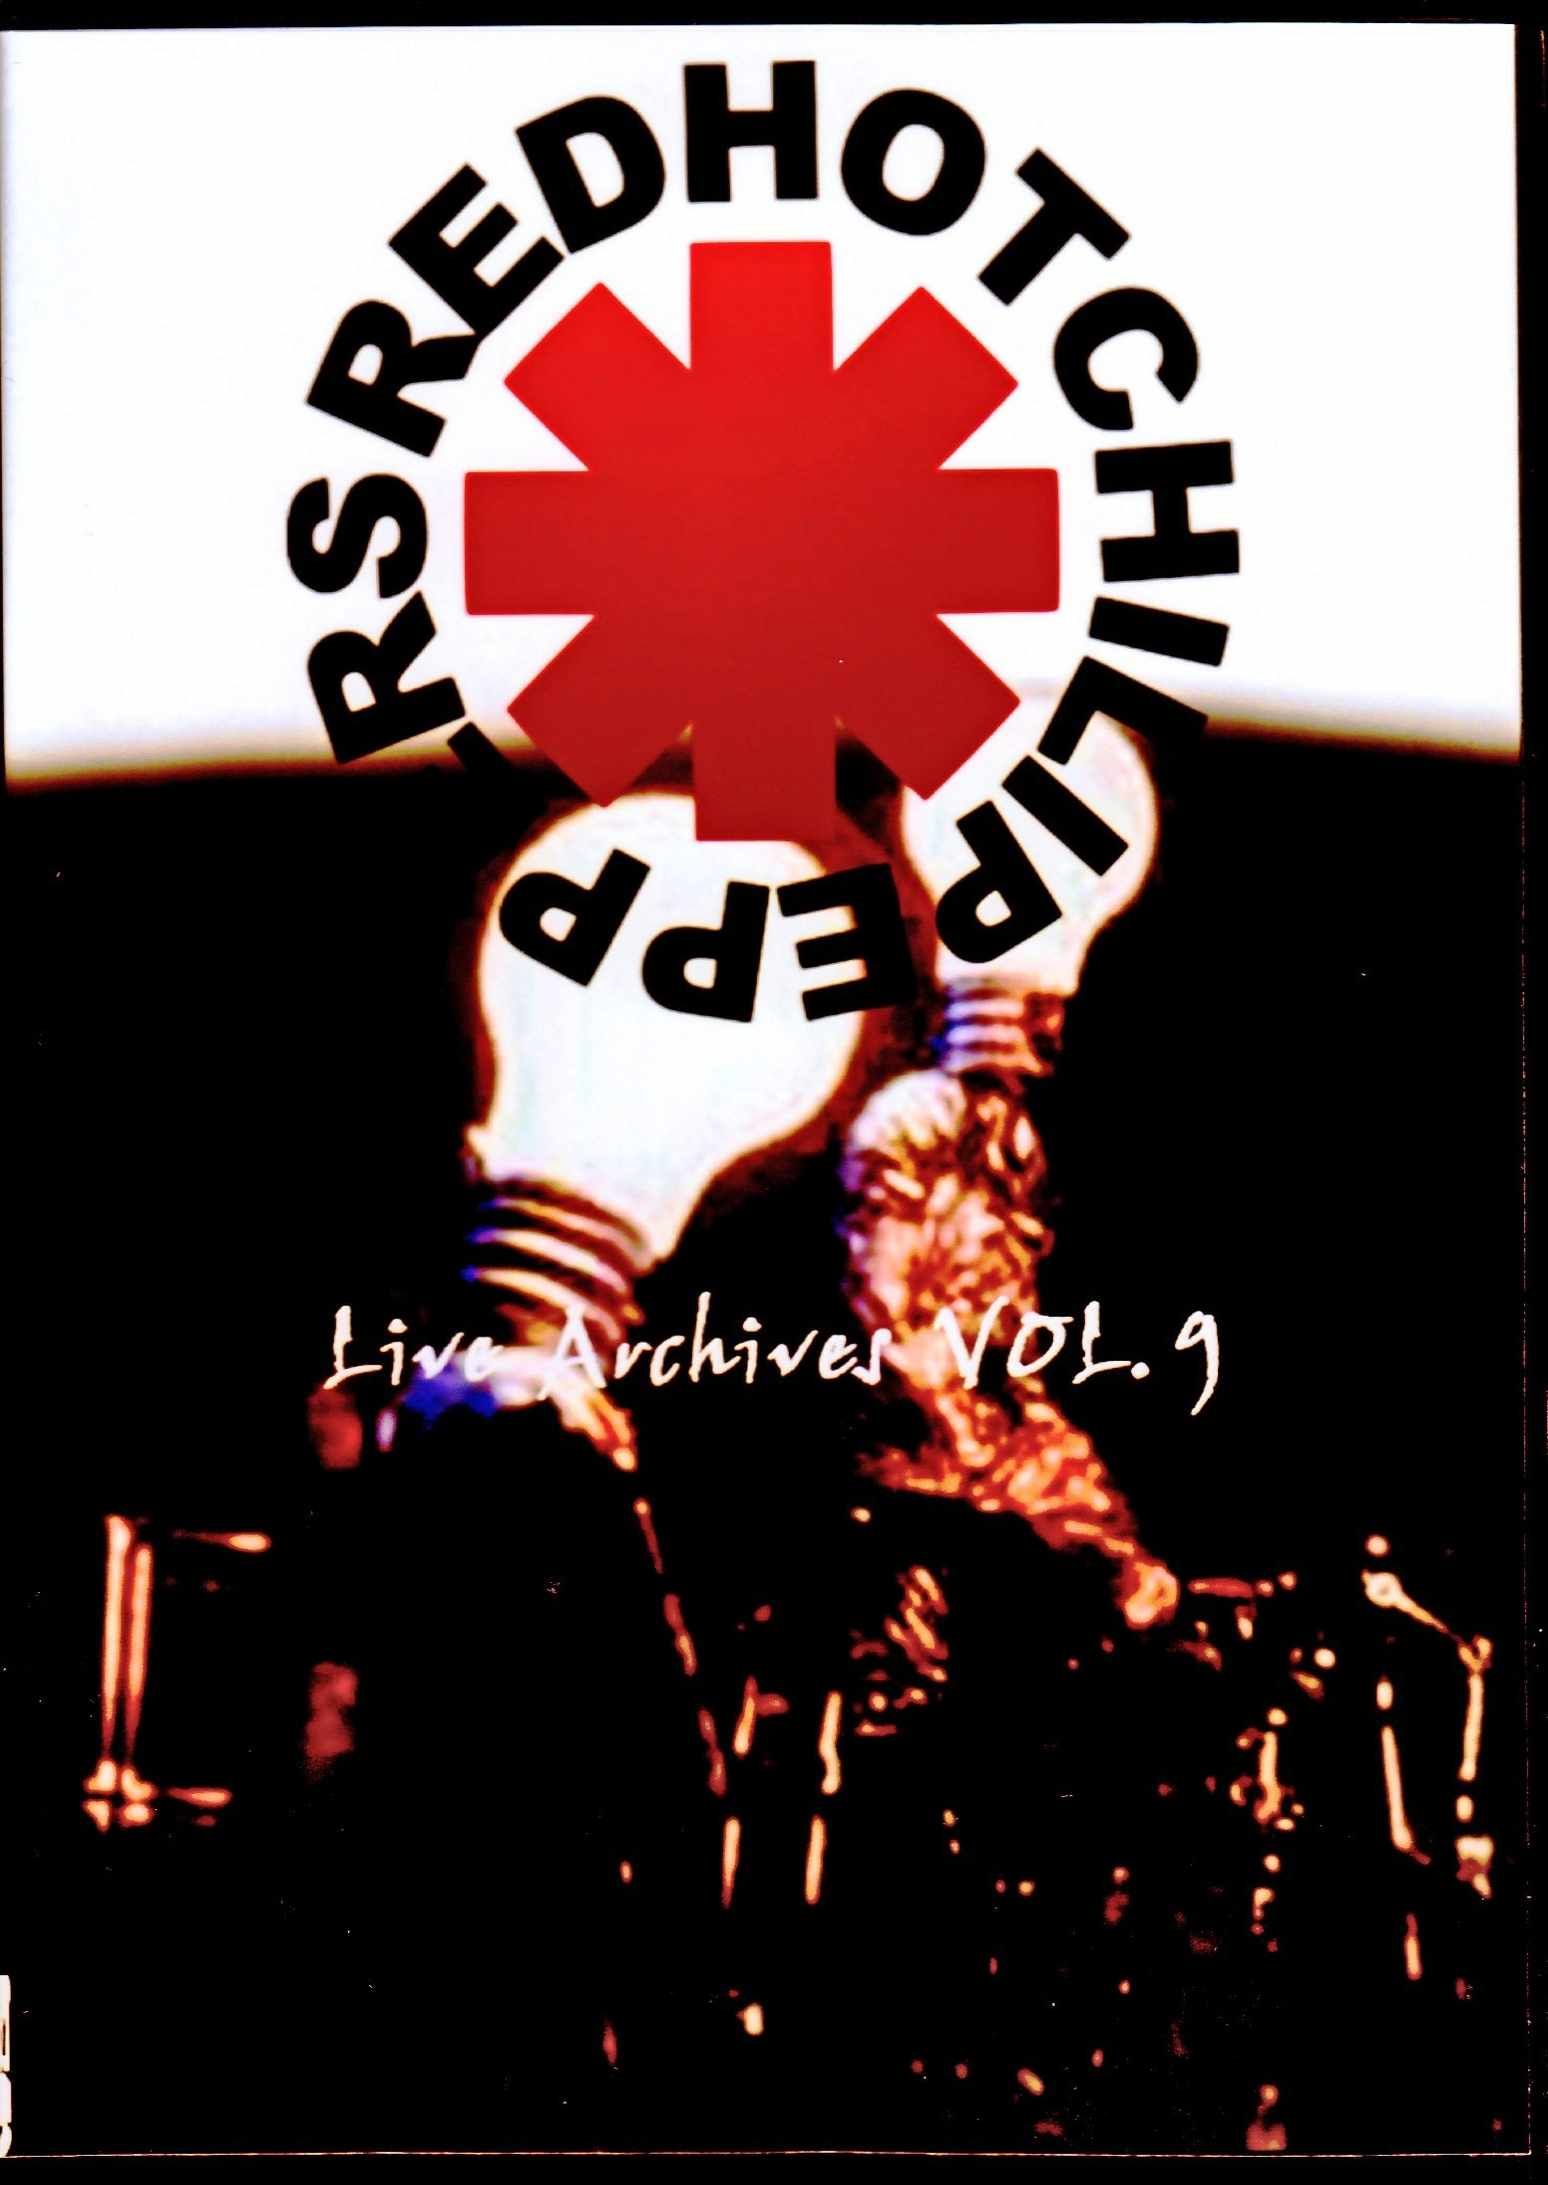 Red Hot Chili Peppers レッド・ホット・チリ・ペッパーズ/ライブ映像集 Vol.9